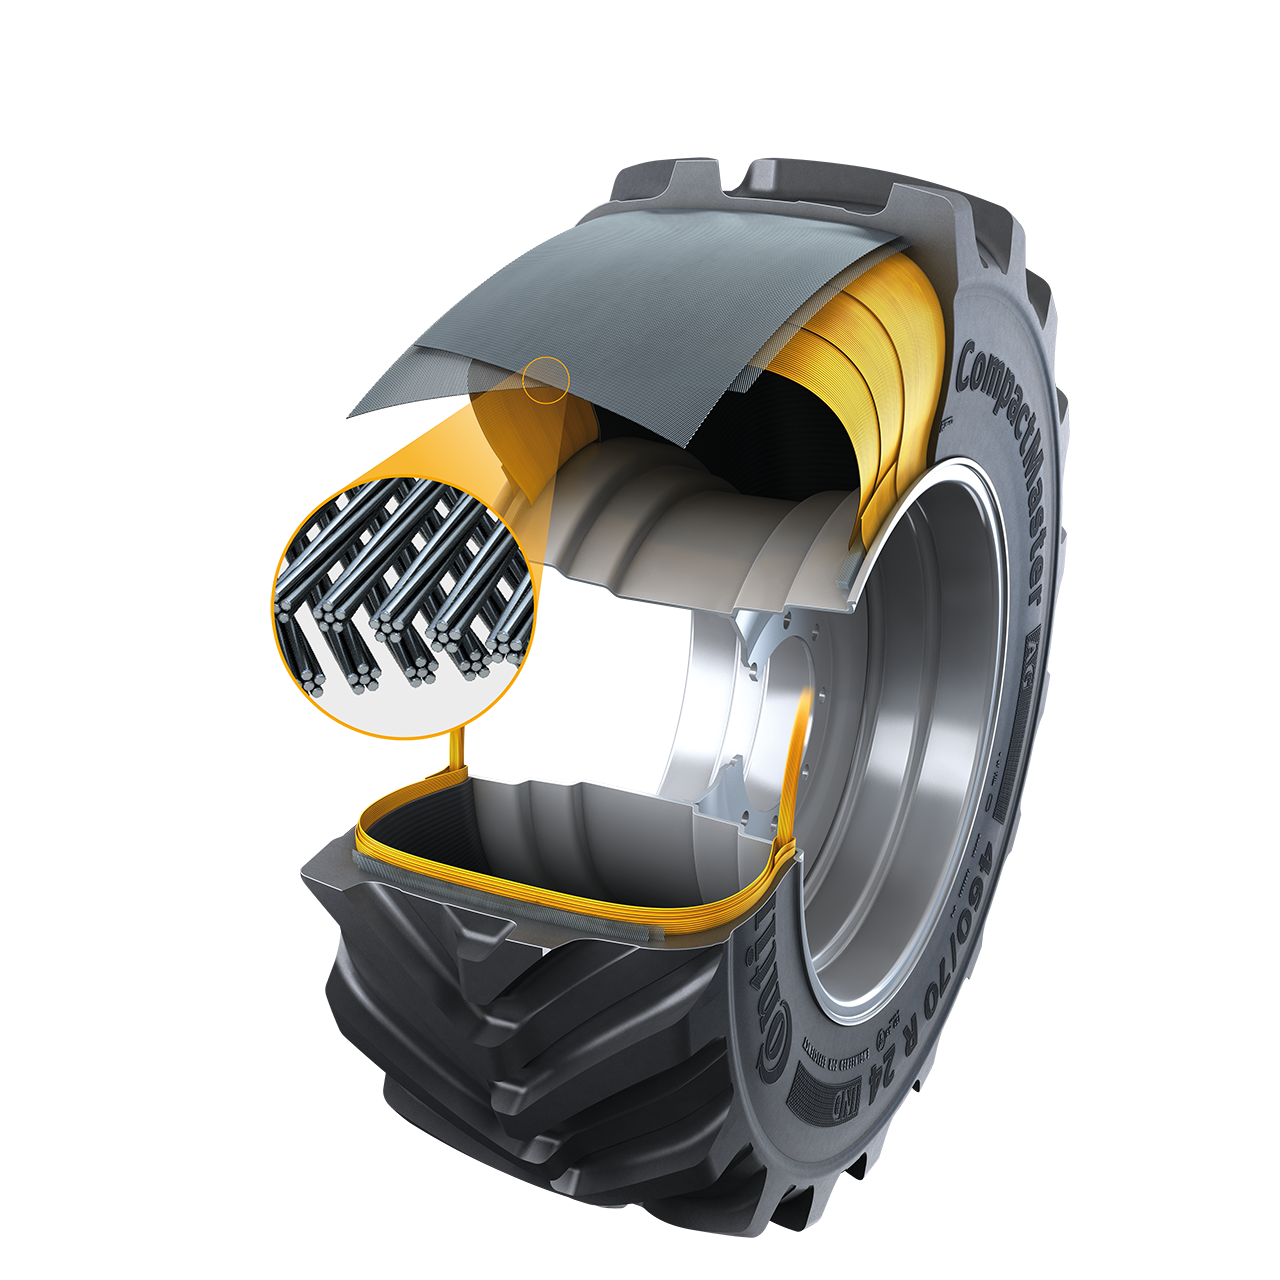 The twisted steel belt construction of the CompactMaster AG tire makes it stiffer. (Source: Continental)